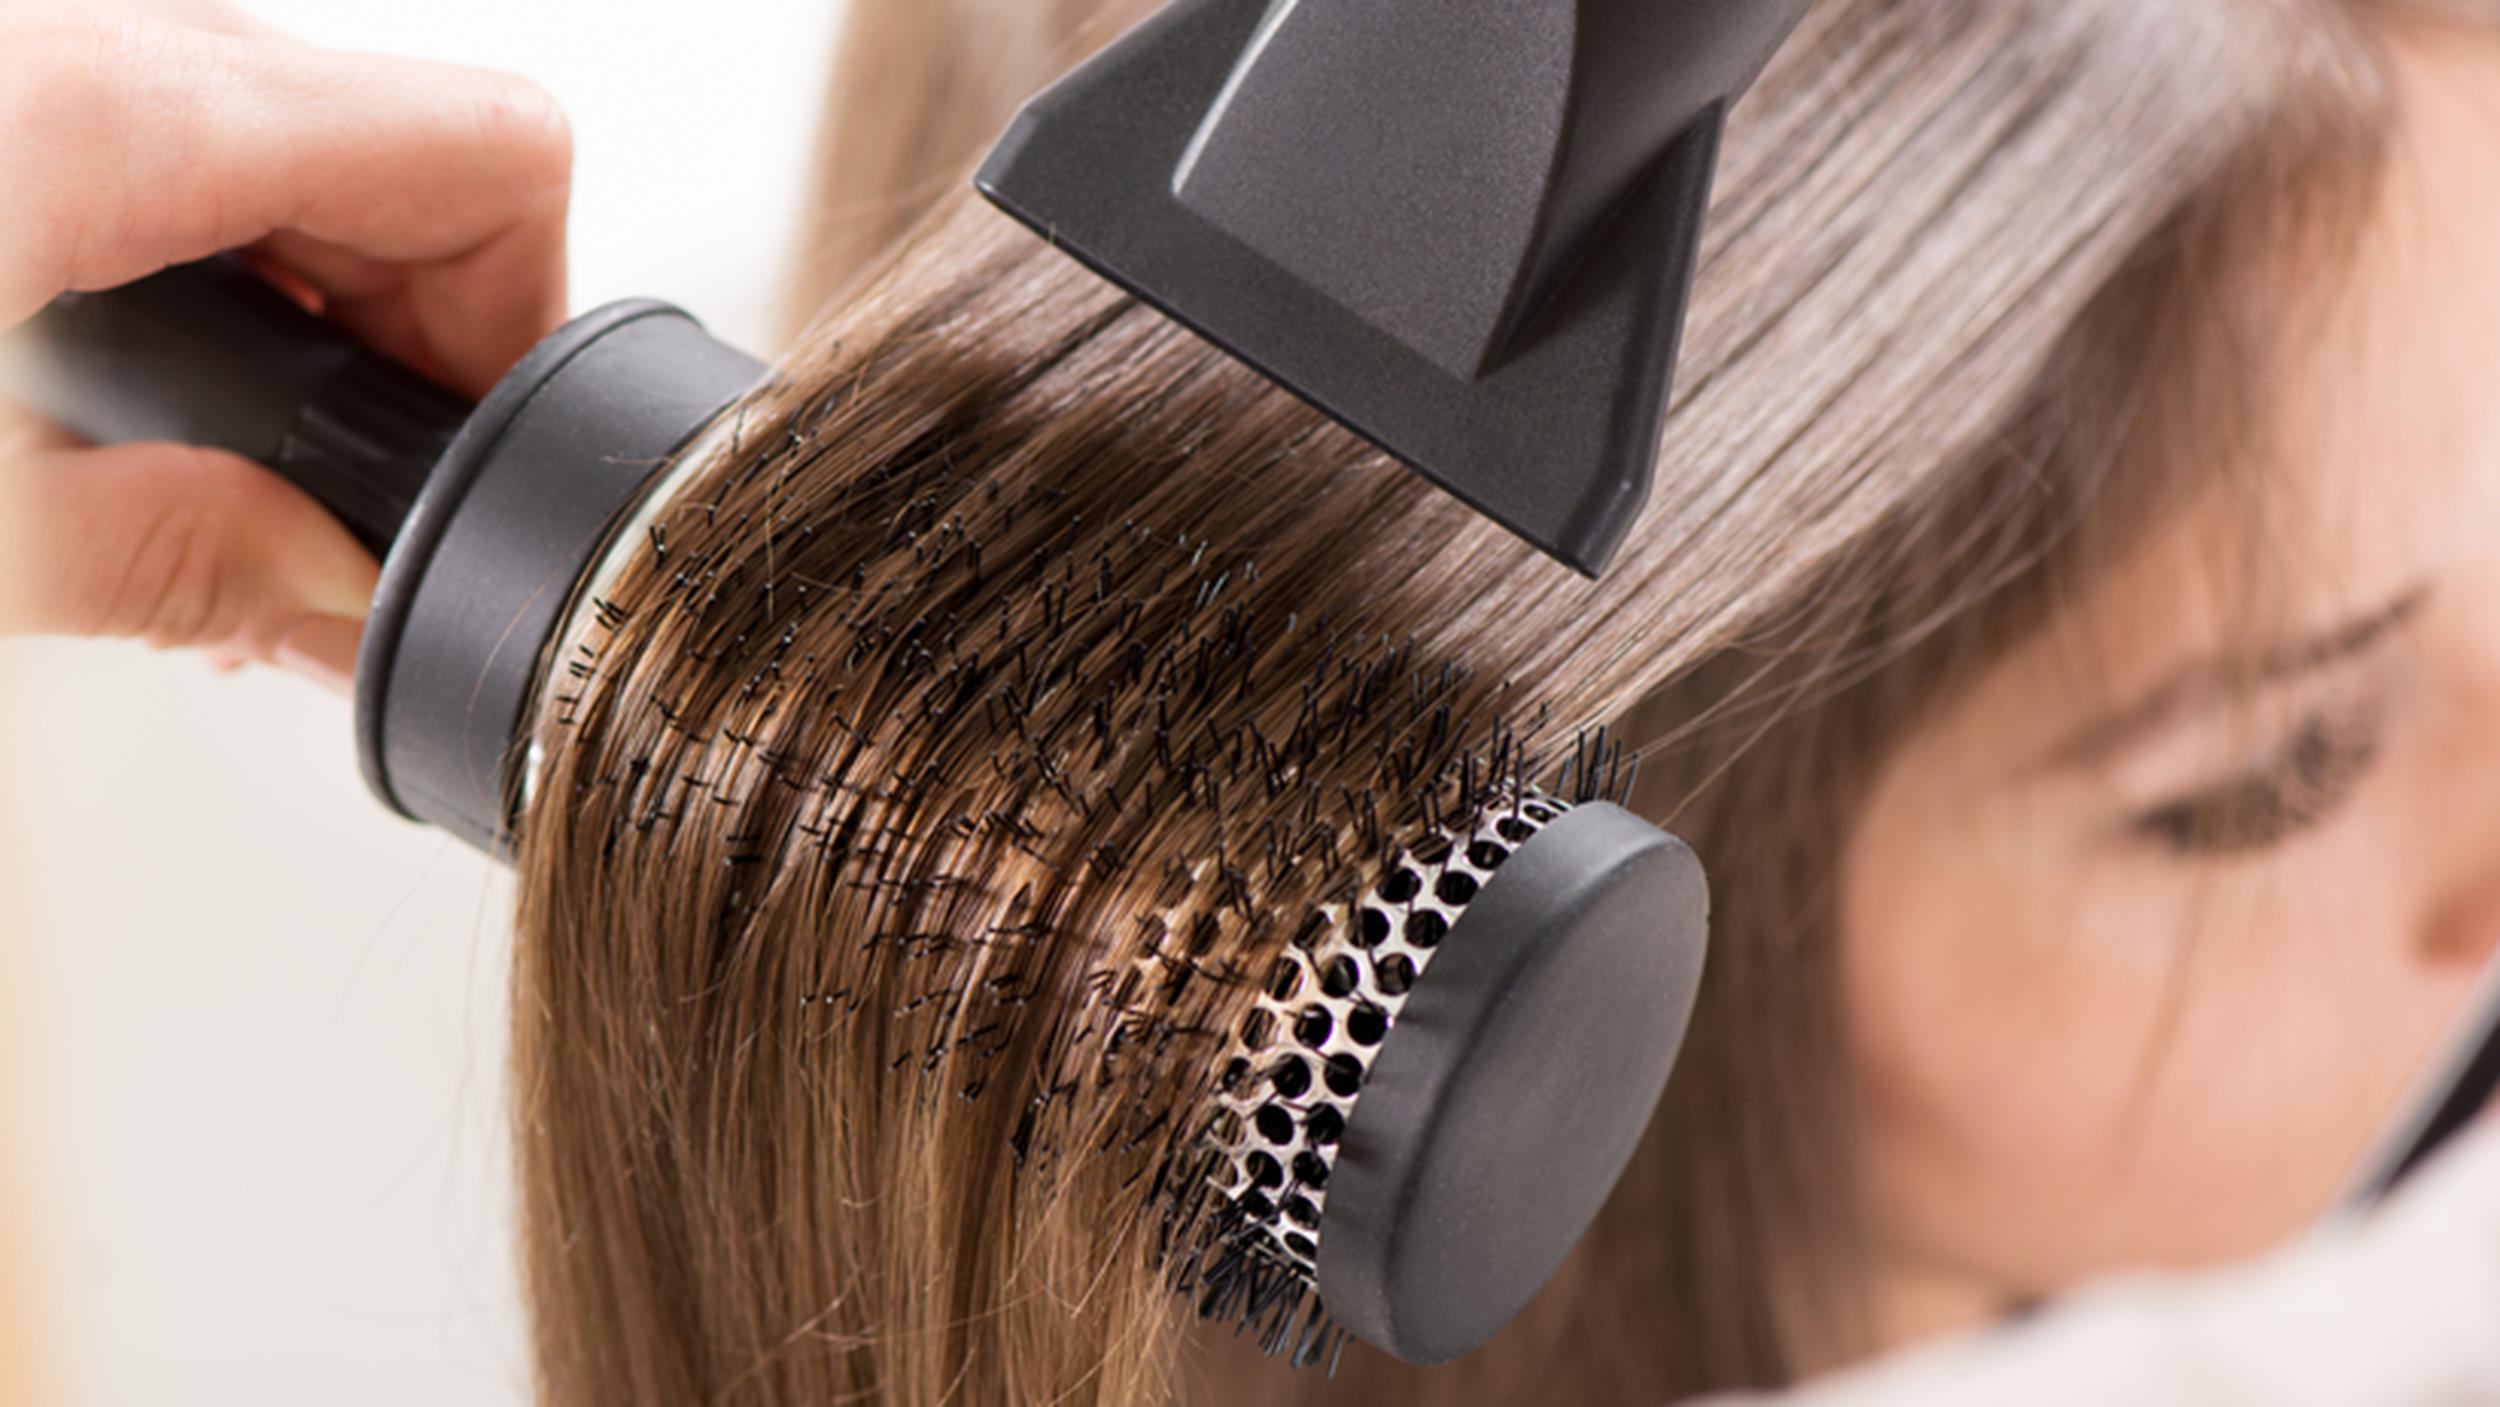 home-blowout-hair-drying-today-150408_2cec21158824b564f31ba9697b8d621b